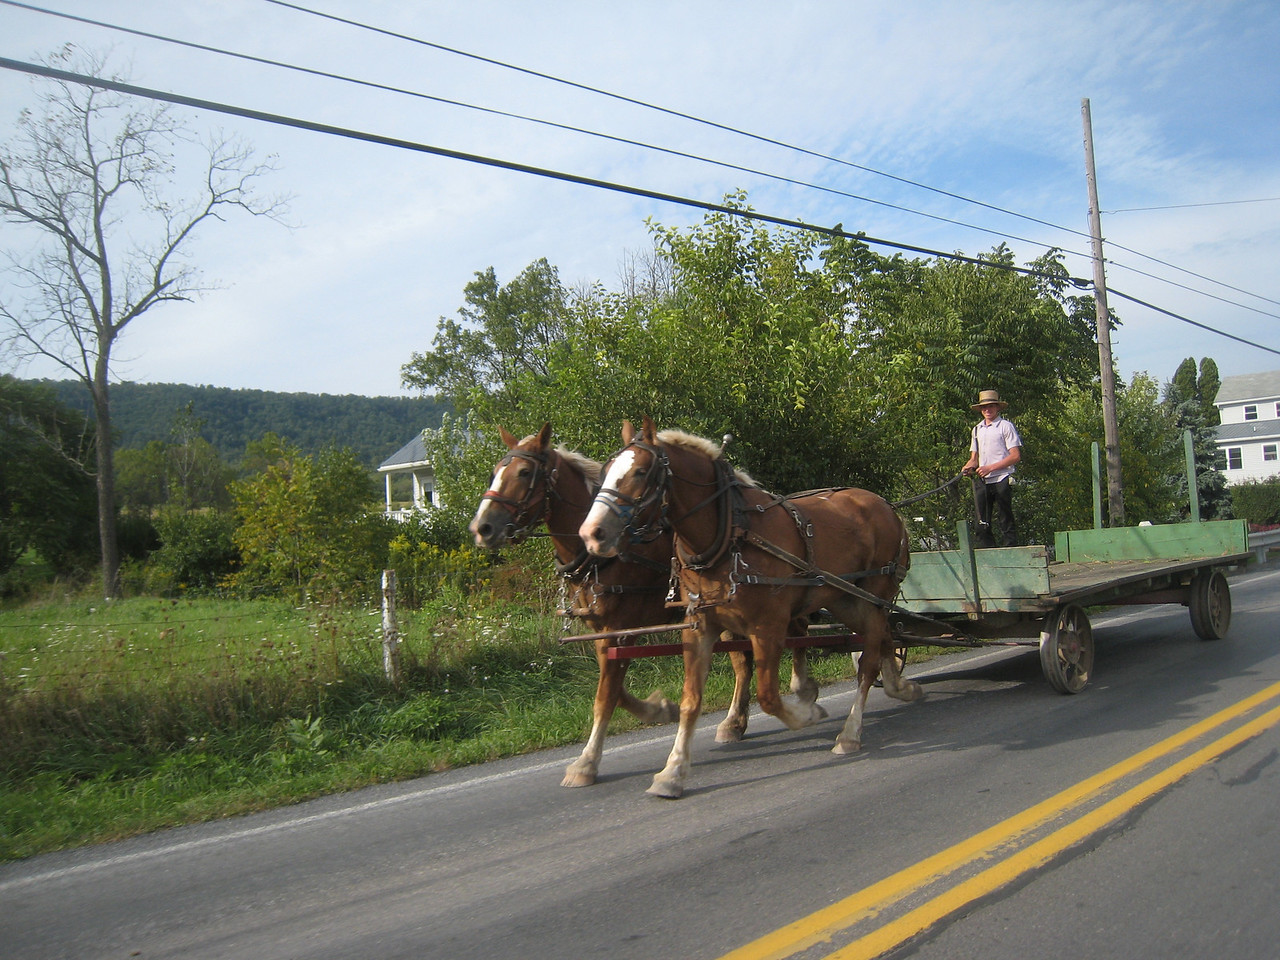 Coming home, I had other kinds of traffic to deal with.